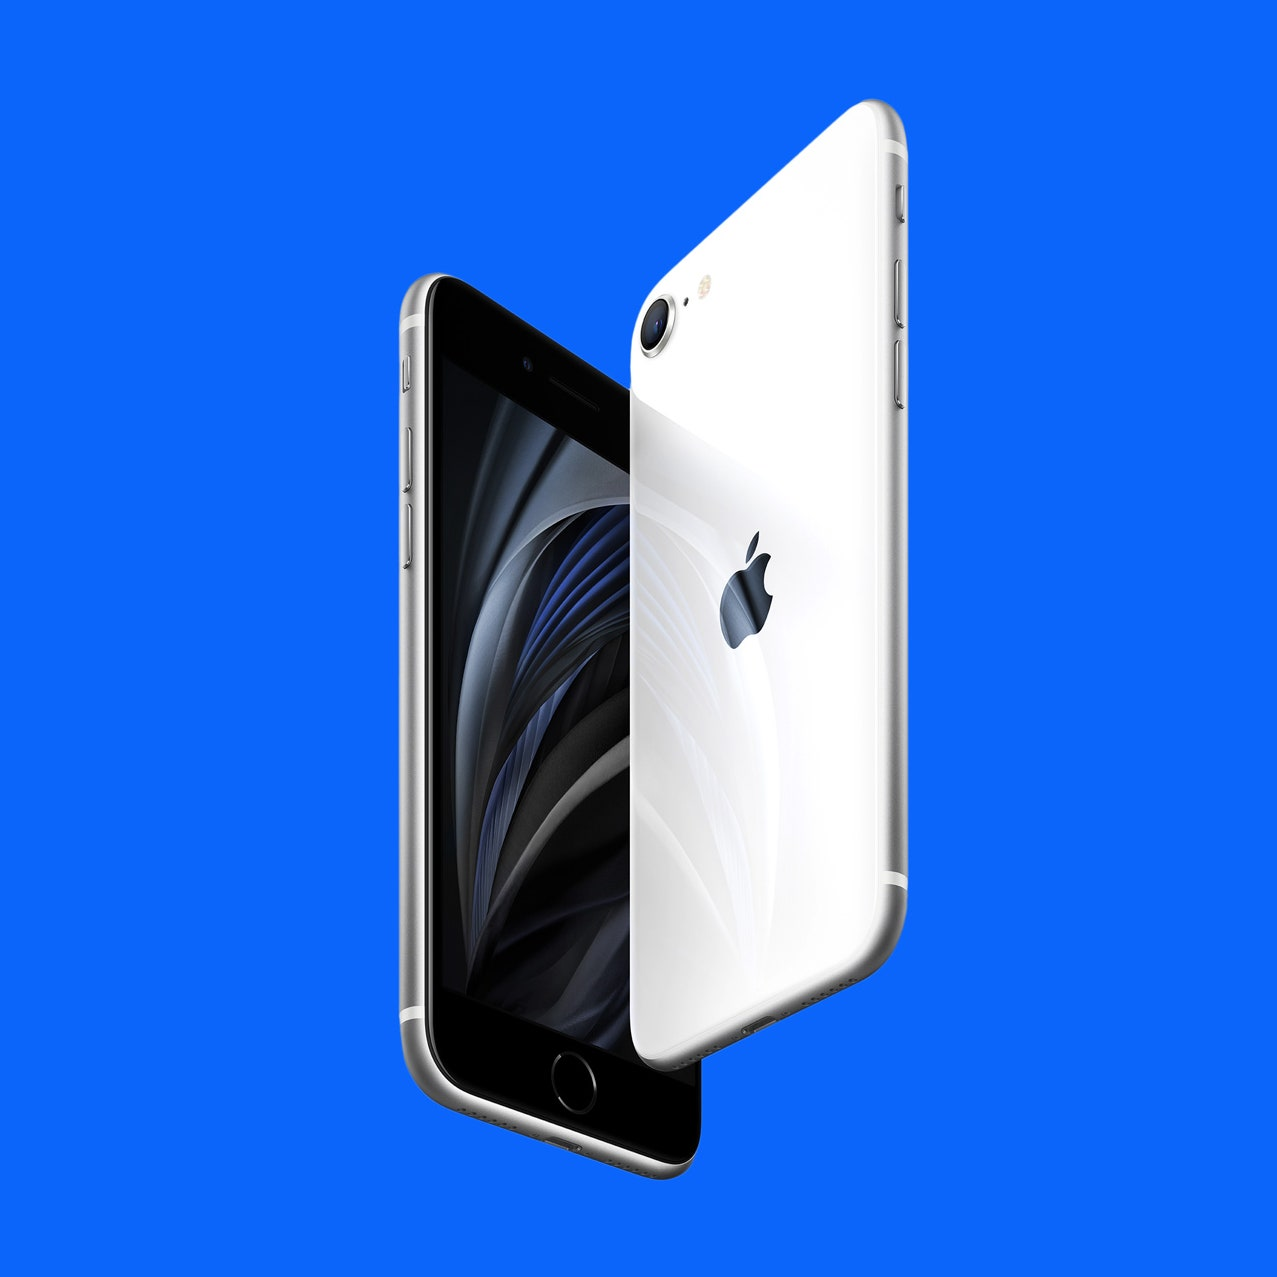 apples-new-iphone-se-will-go-on-sale-in-india-on-20-may-flipkart-reveals-sale-offers-all-you-need-to-know